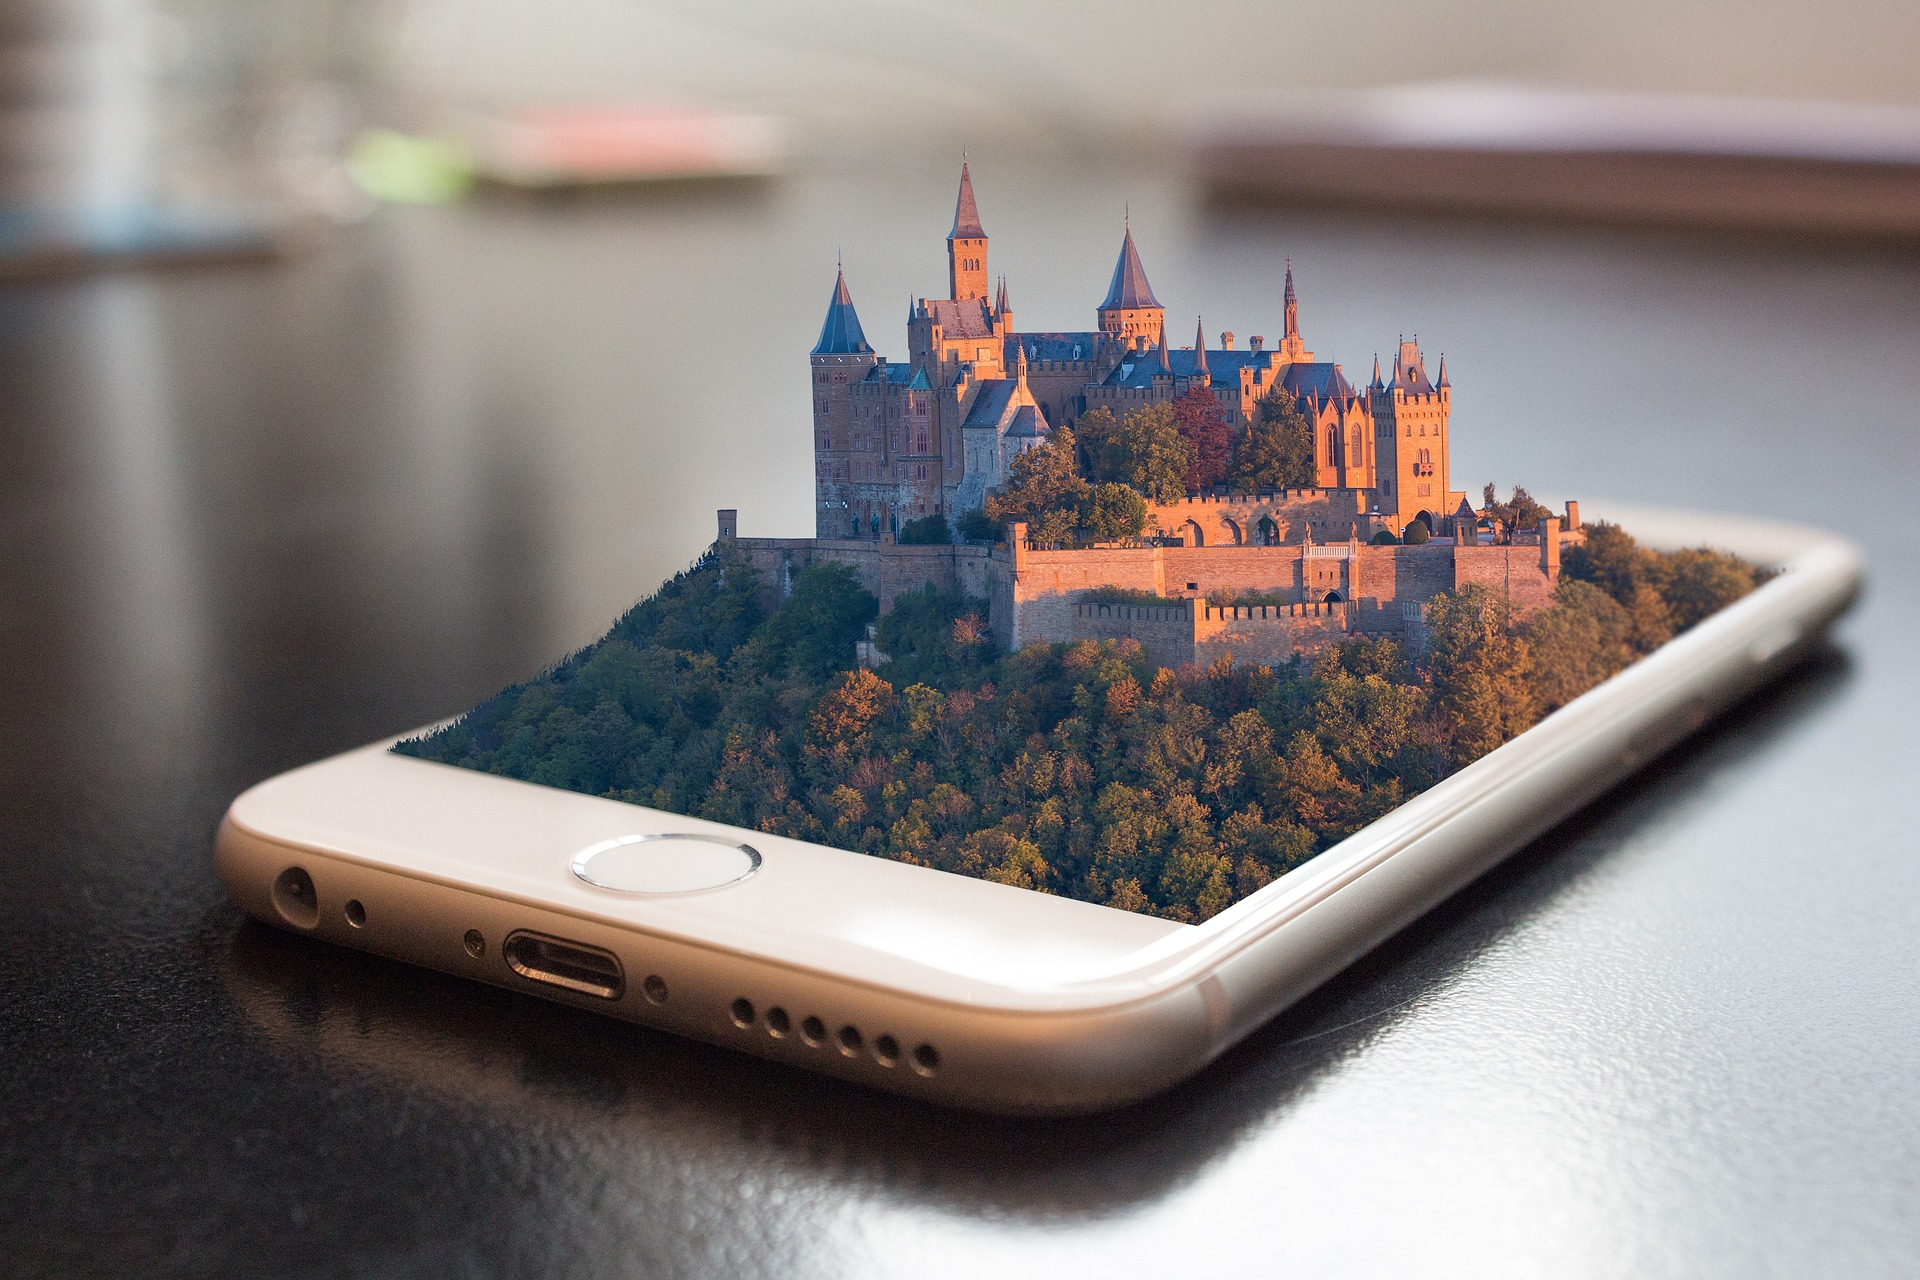 a white mobile phone on a table with a picture of a castle coming out of it that looks 4d